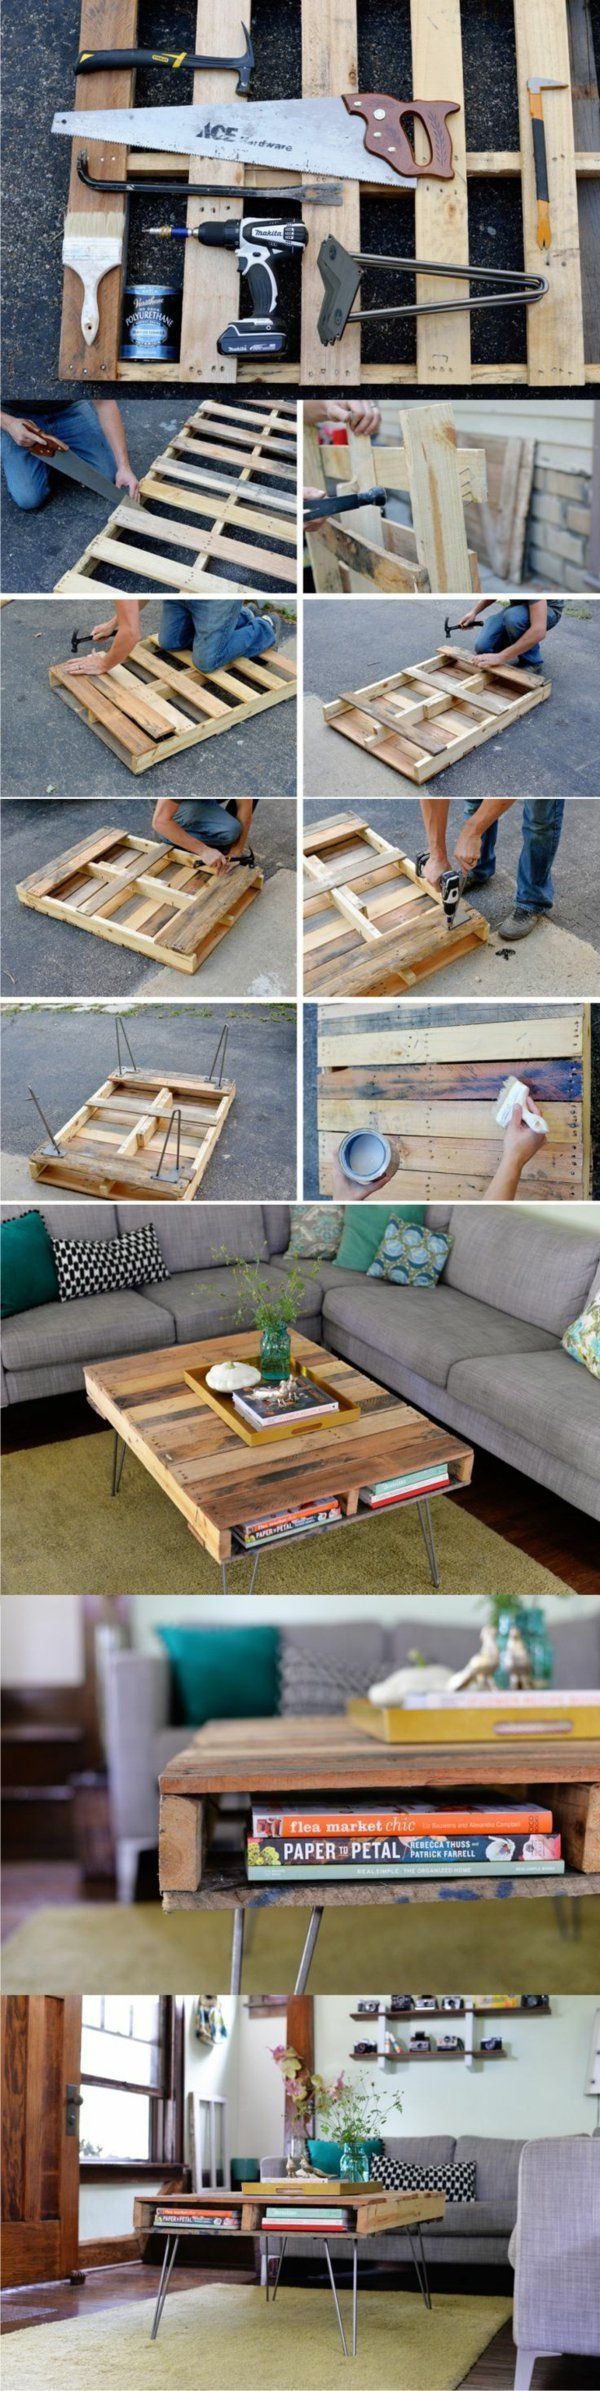 140 Holz Ideas Wood Diy Garden In The Woods Photo Transfer To Wood